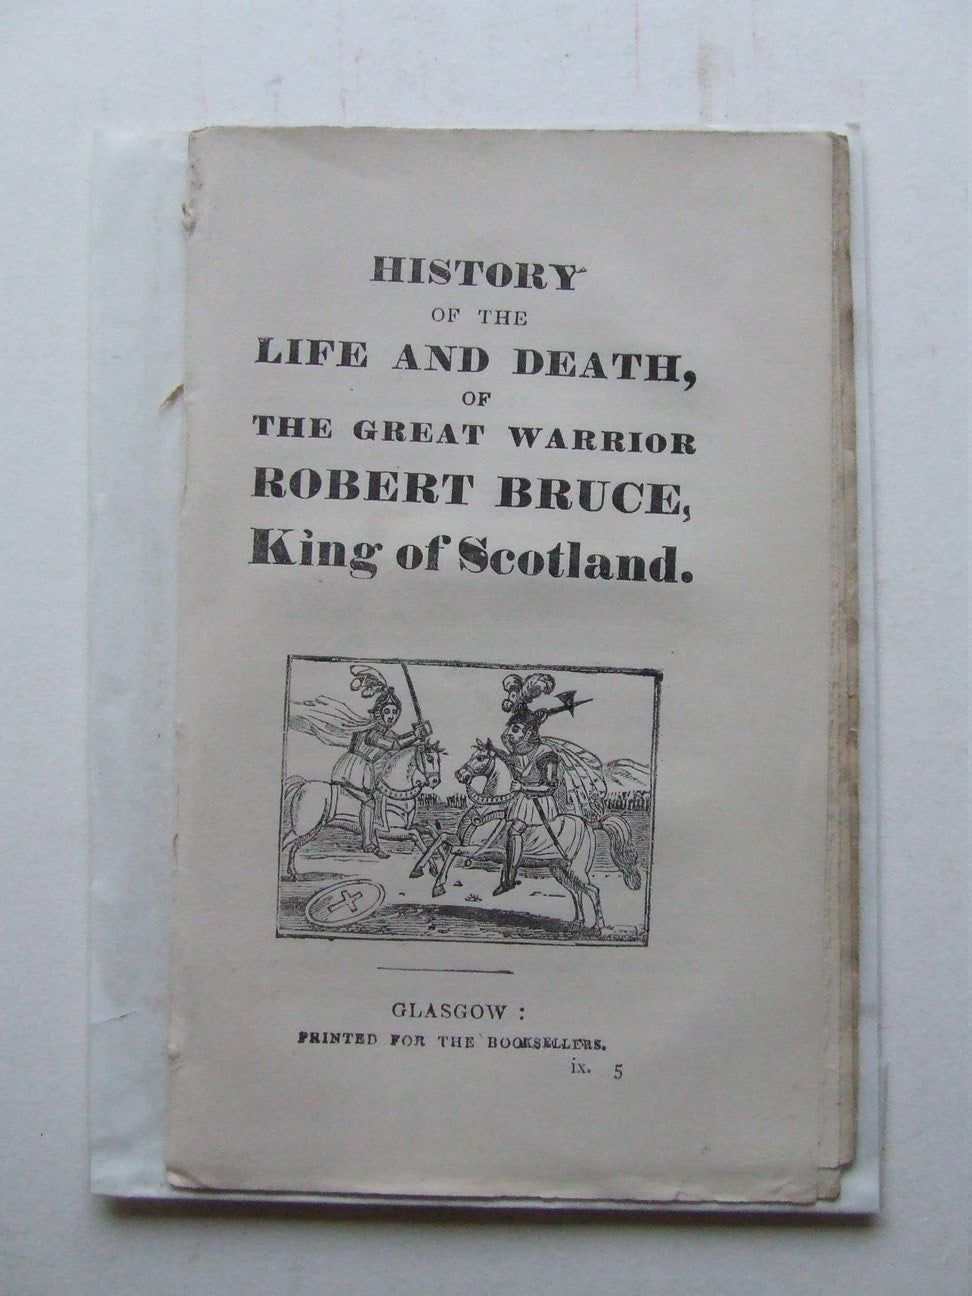 History of the Life and Death, of the great warrior Robert Bruce, King of Scotland